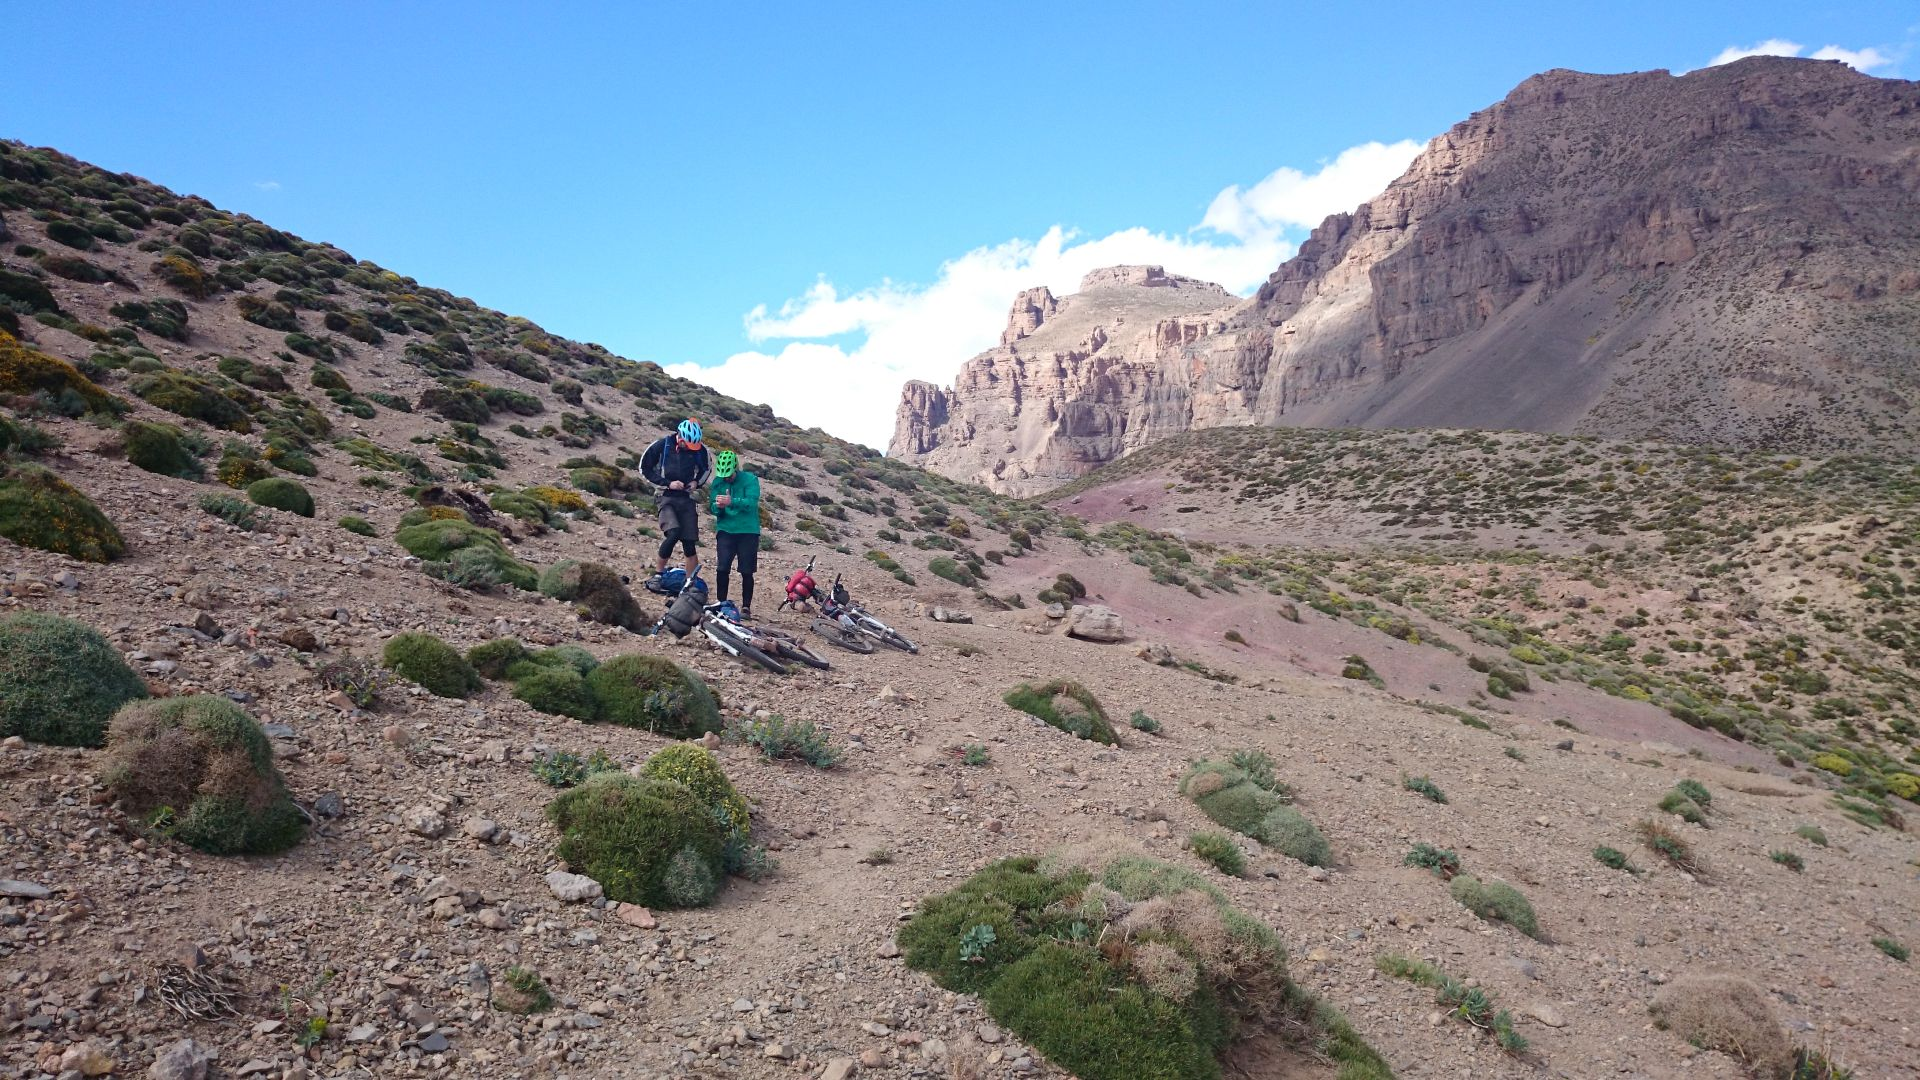 """At the top of the Tizi-n-Rughuelt pass, at 9,521 ft, in the High Atlas mountain of Morocco, with Steve & Shaun. Taken on """"Day 4"""" of our 2-week, unsupported traverse of the High Atlas in 2015"""